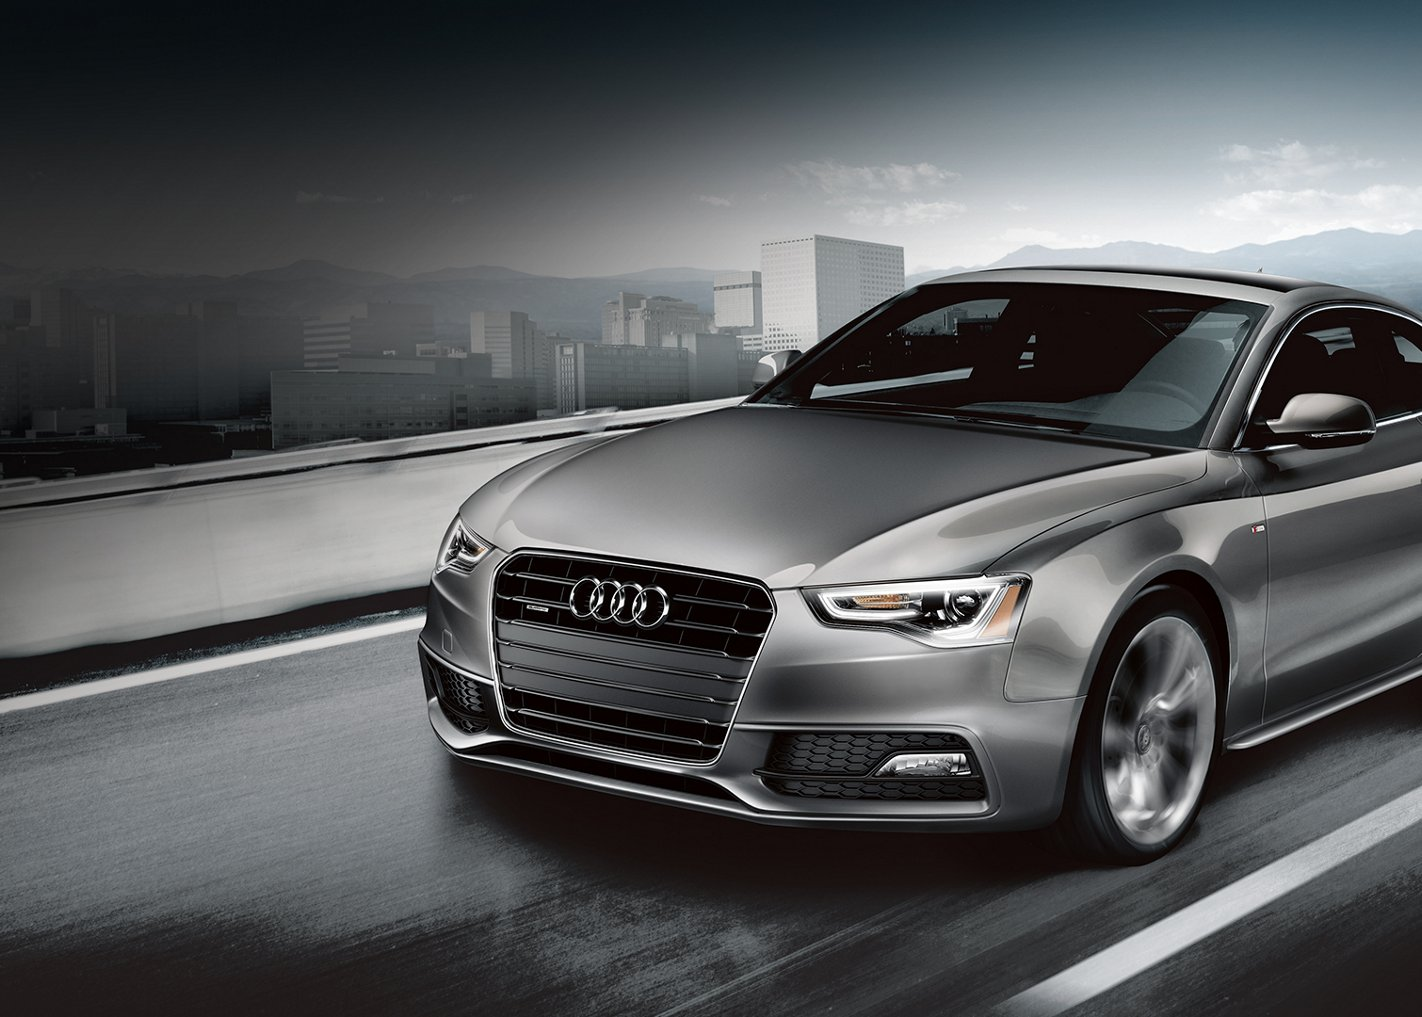 Audi A Price Lease Offers Torrance CA - Audi car loan interest rate